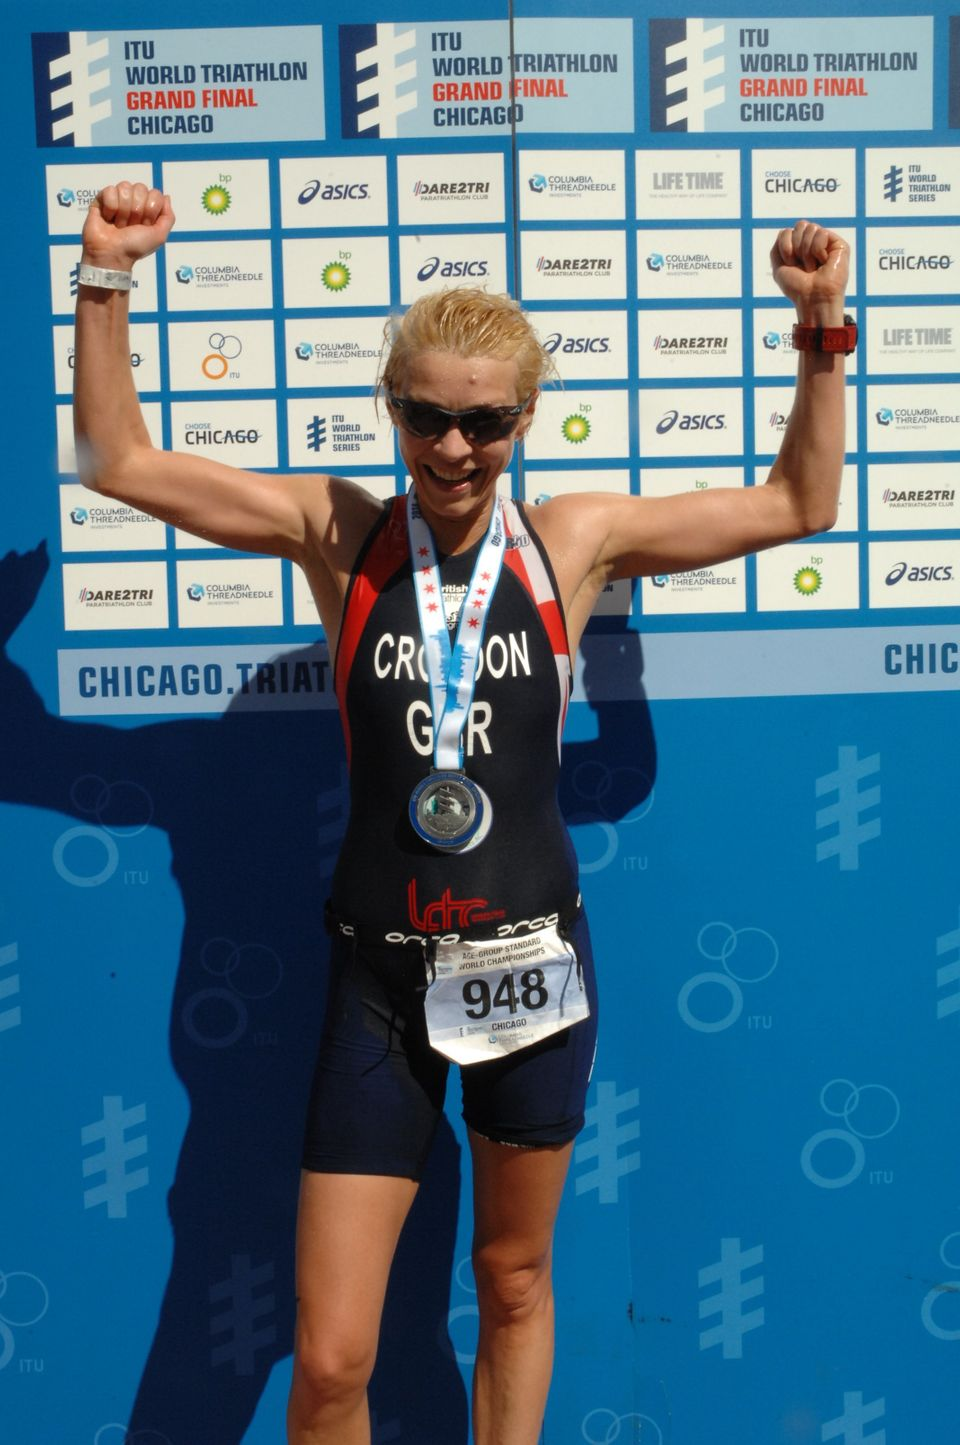 Going From Party Girl To Team GB Triathlete: The Resilience I Didn't Know I